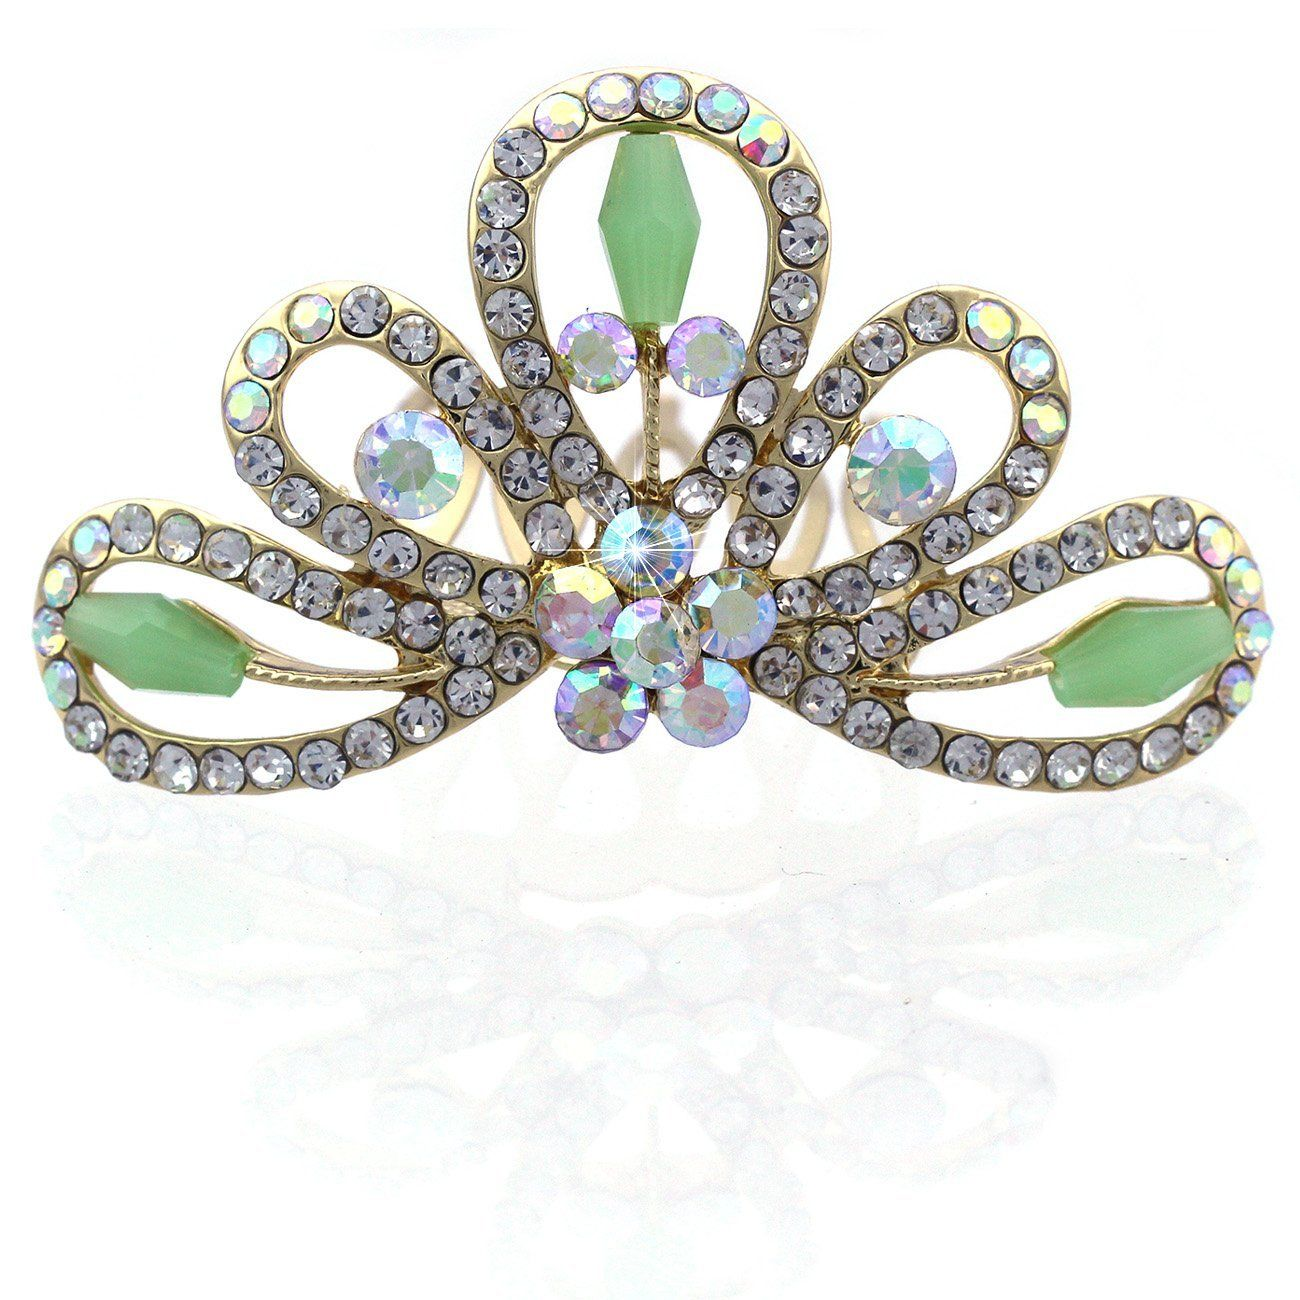 Ballerina Princess Crown Tiara Hair Comb * You can get more details by clicking on the image.